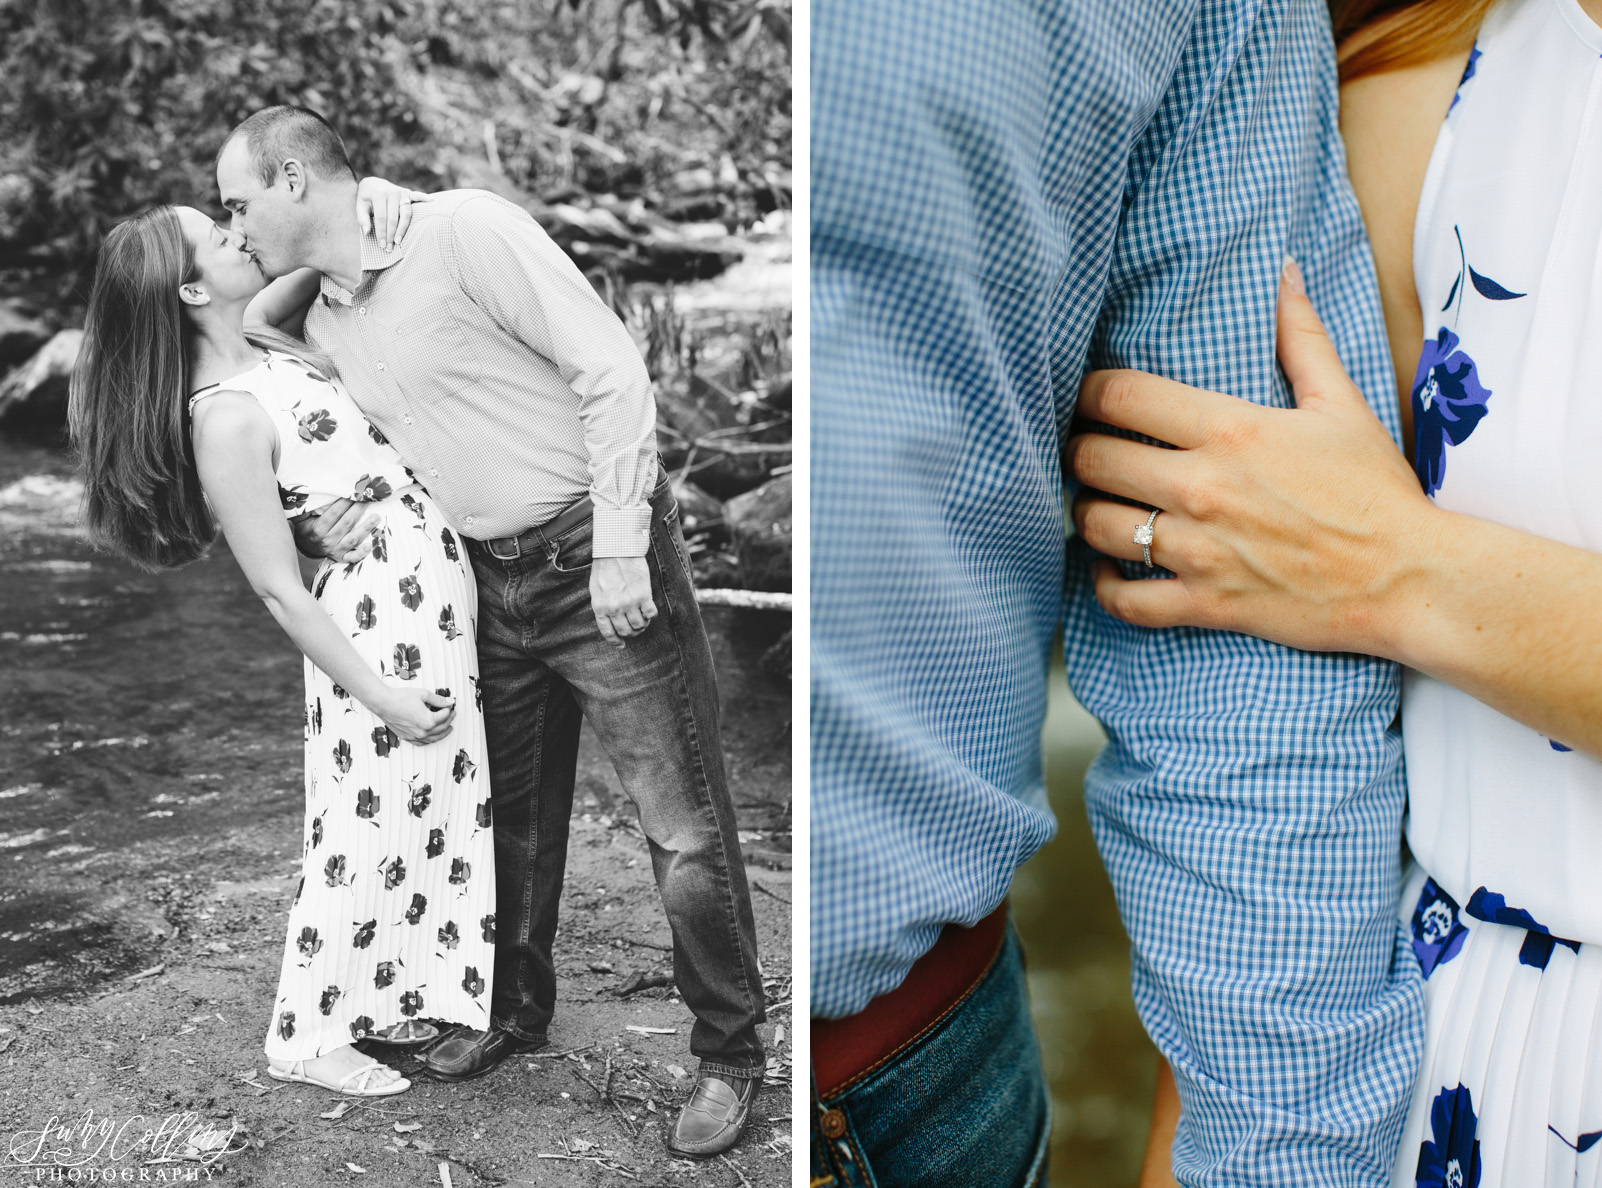 poses, couples, outdoor, Mynatt park, Knoxville, Tennessee, engagement, sunset, evening, love, vibrant, colorful, bright, creative, romantic, natural, light and airy, natural light, passion, inspiration, intimate, outfits, fountain, woods, river, park, black and white, ring, hands